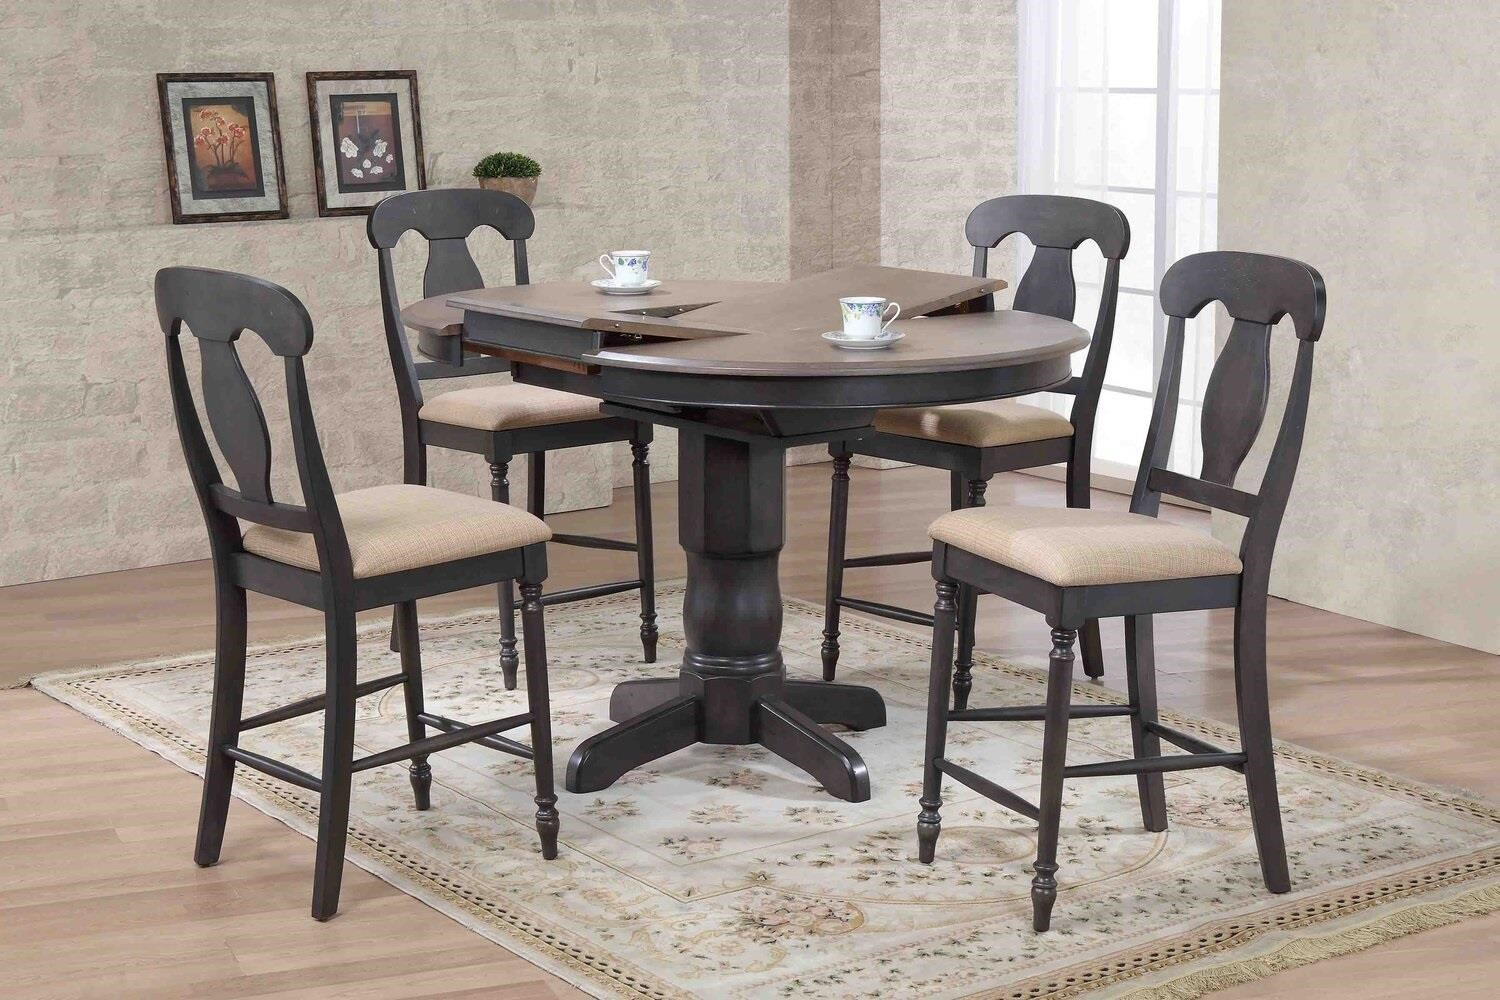 5 piece round counter height dining set